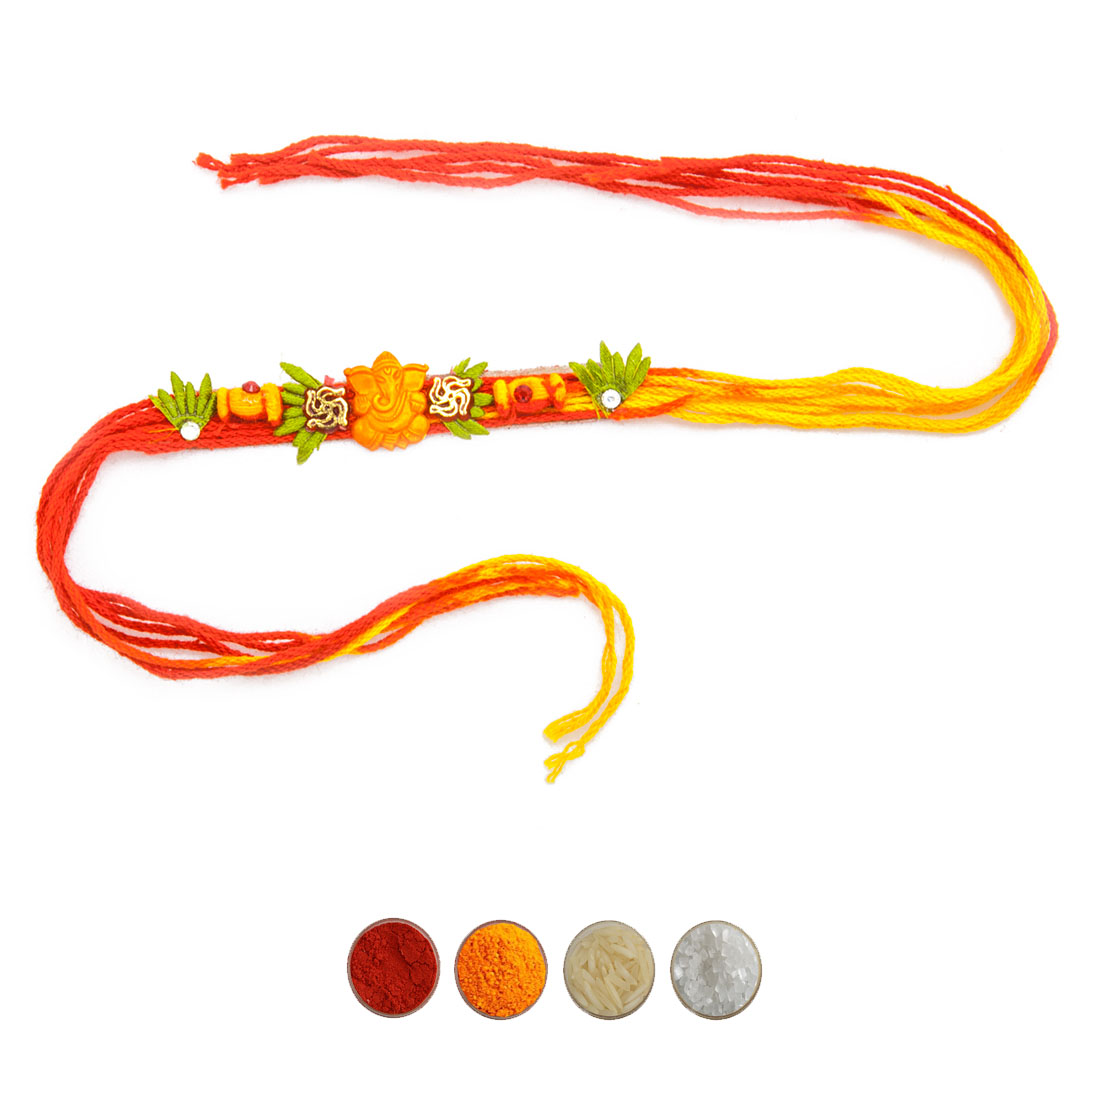 Ganesha Mauli Rakhi Thread for Bhaiya